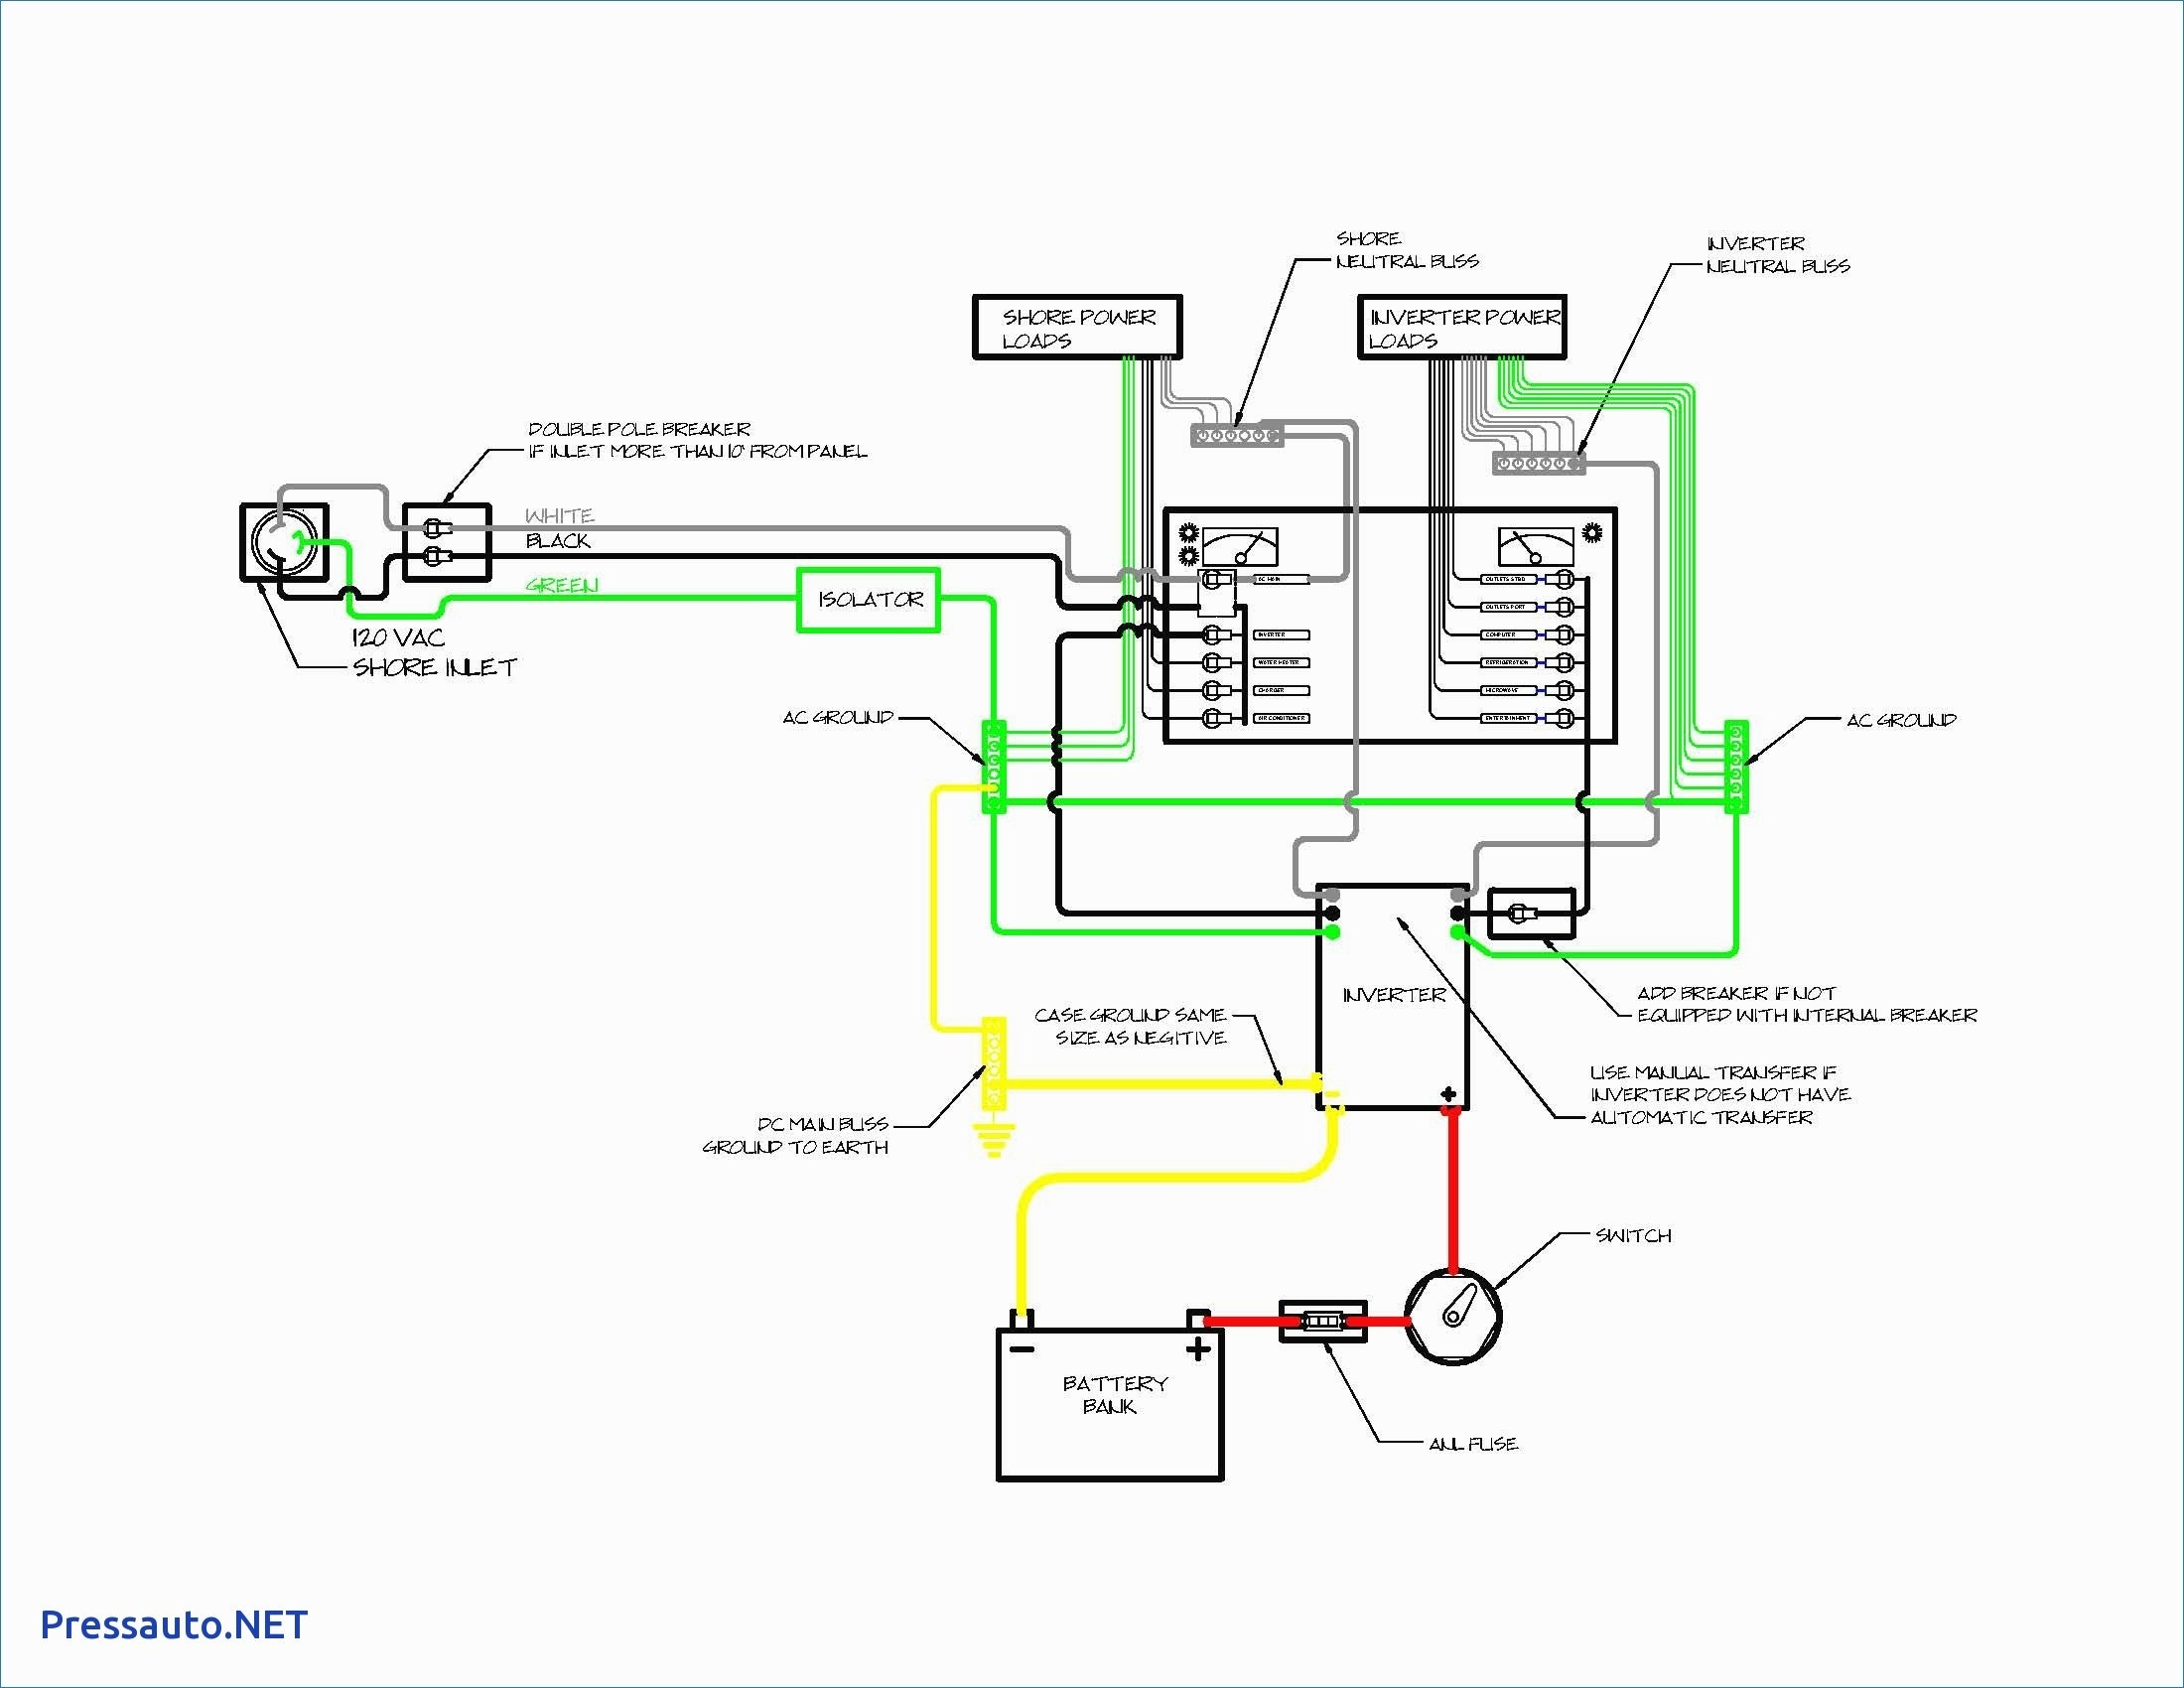 5 Way Trailer Wiring Harness Diagram - Not Lossing Wiring Diagram • - Ranger Boat Trailer Wiring Diagram